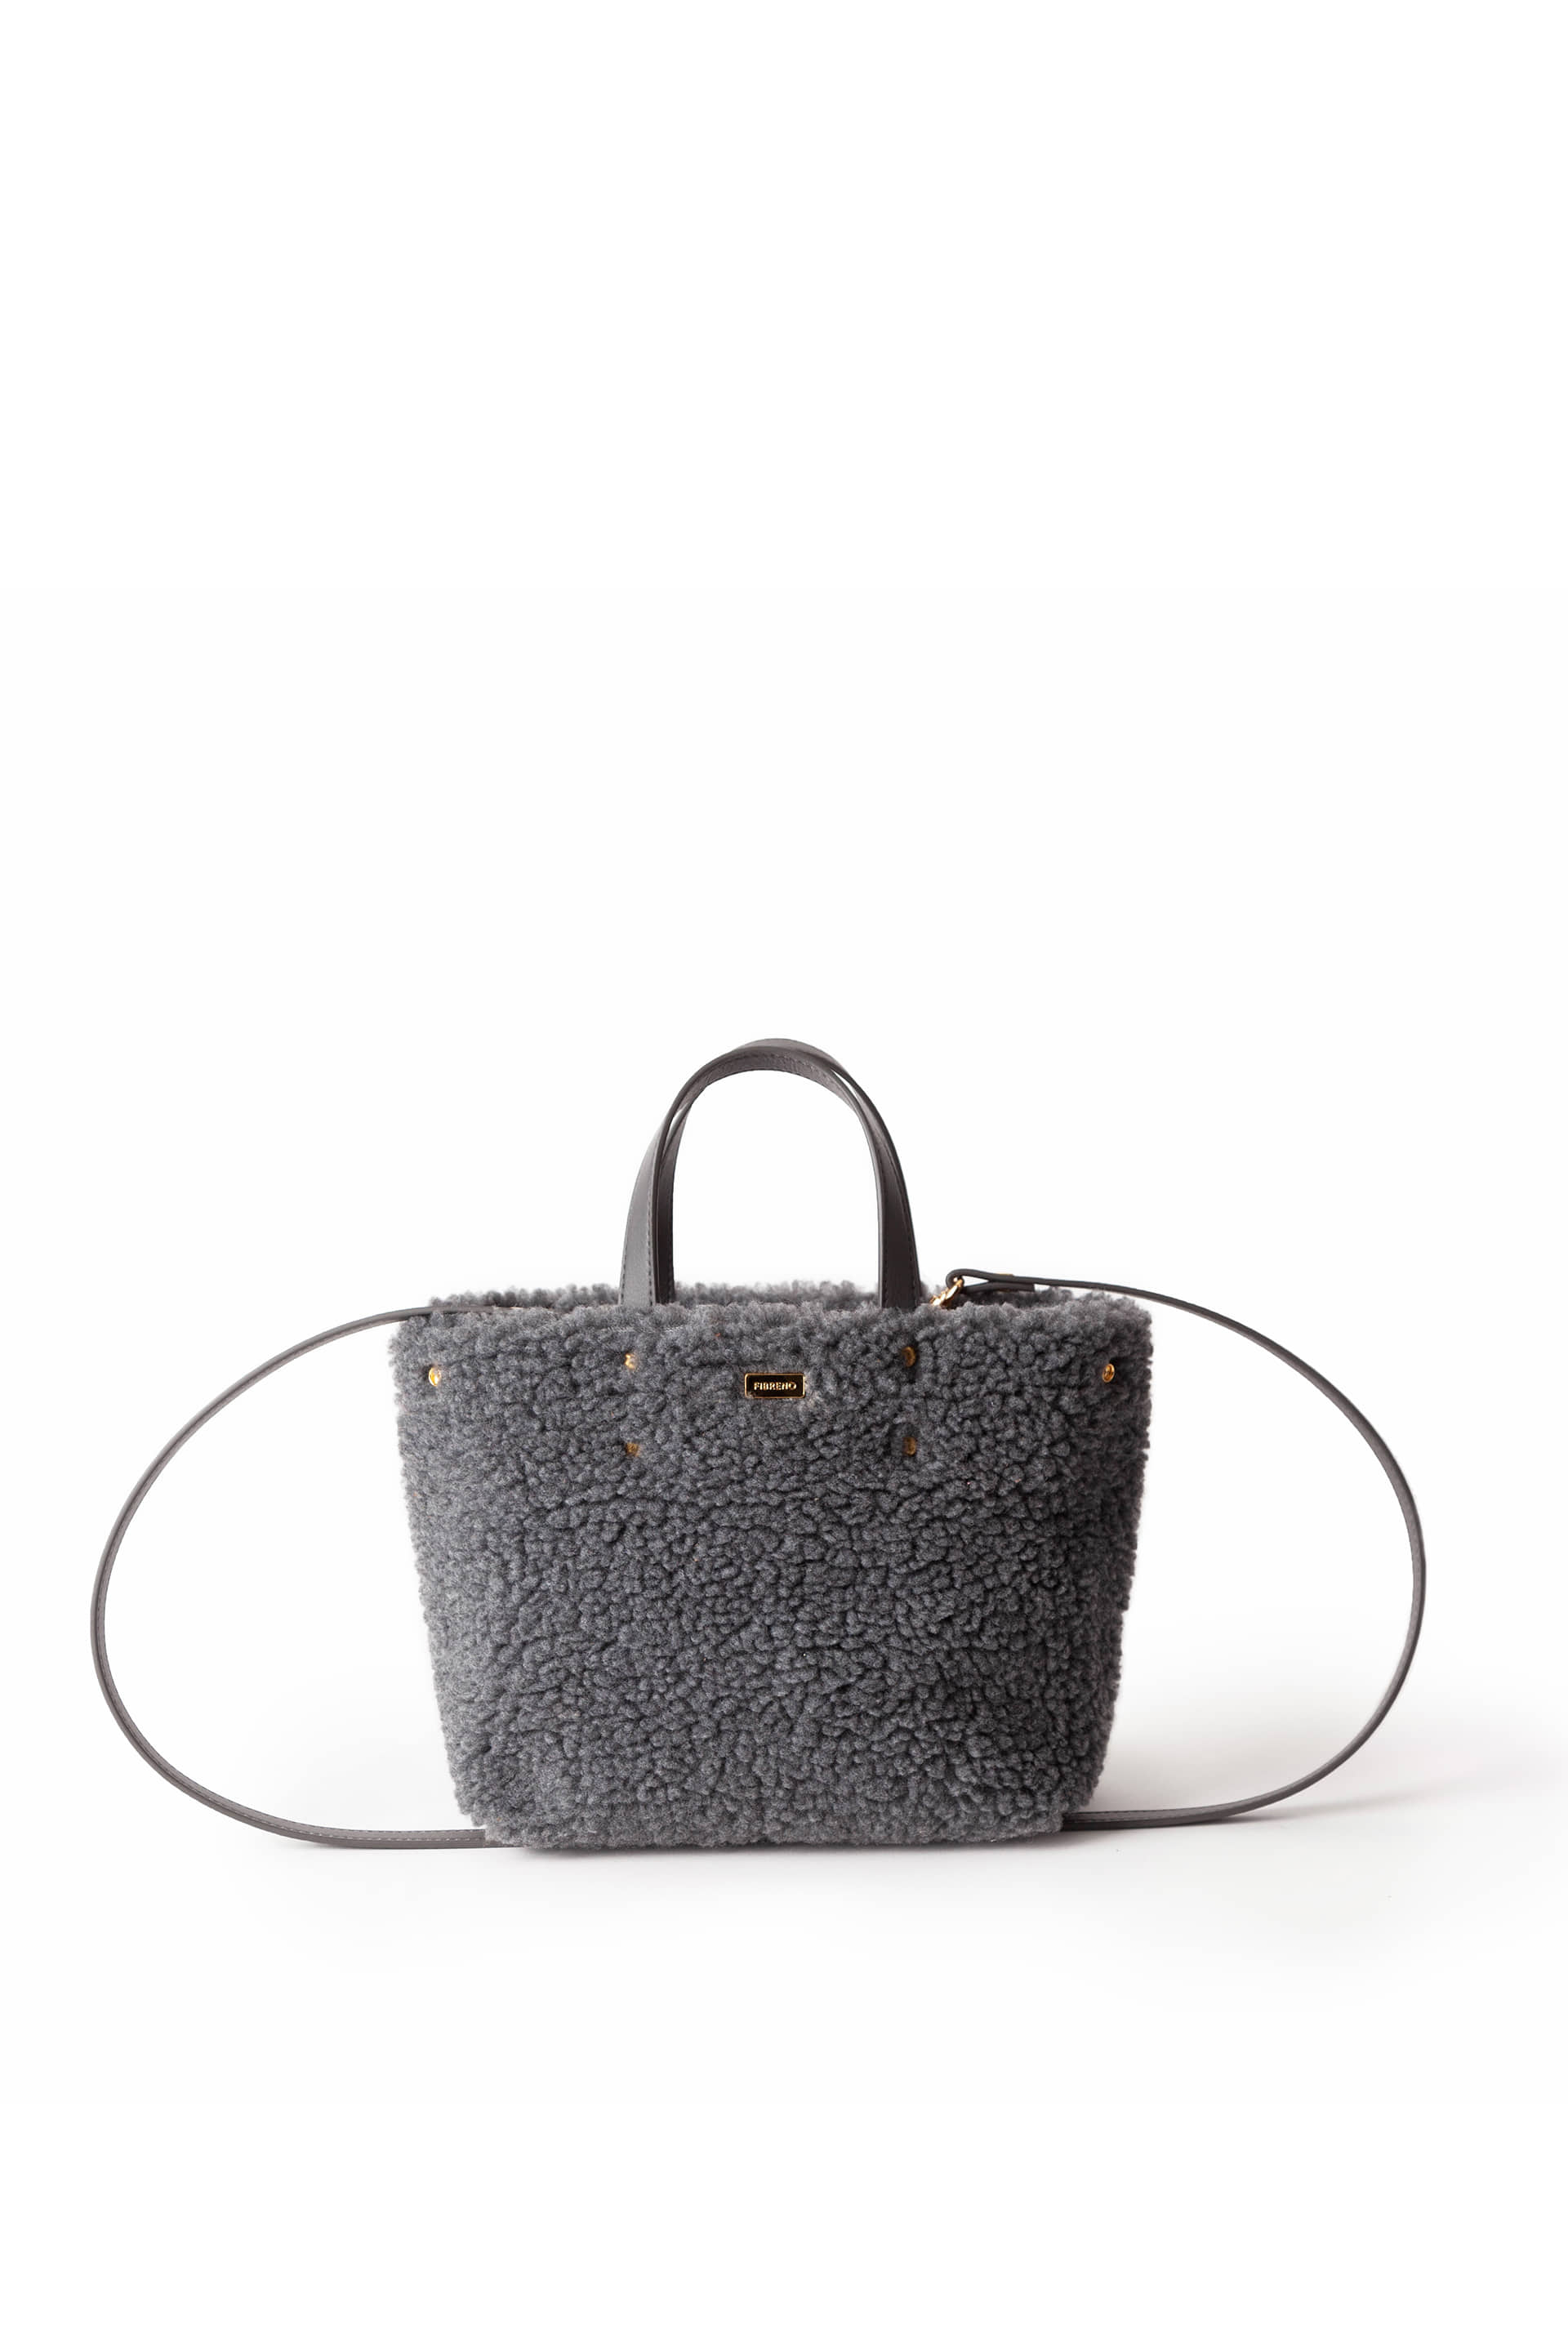 TEDDY BAG 2020 21 Dark Grey